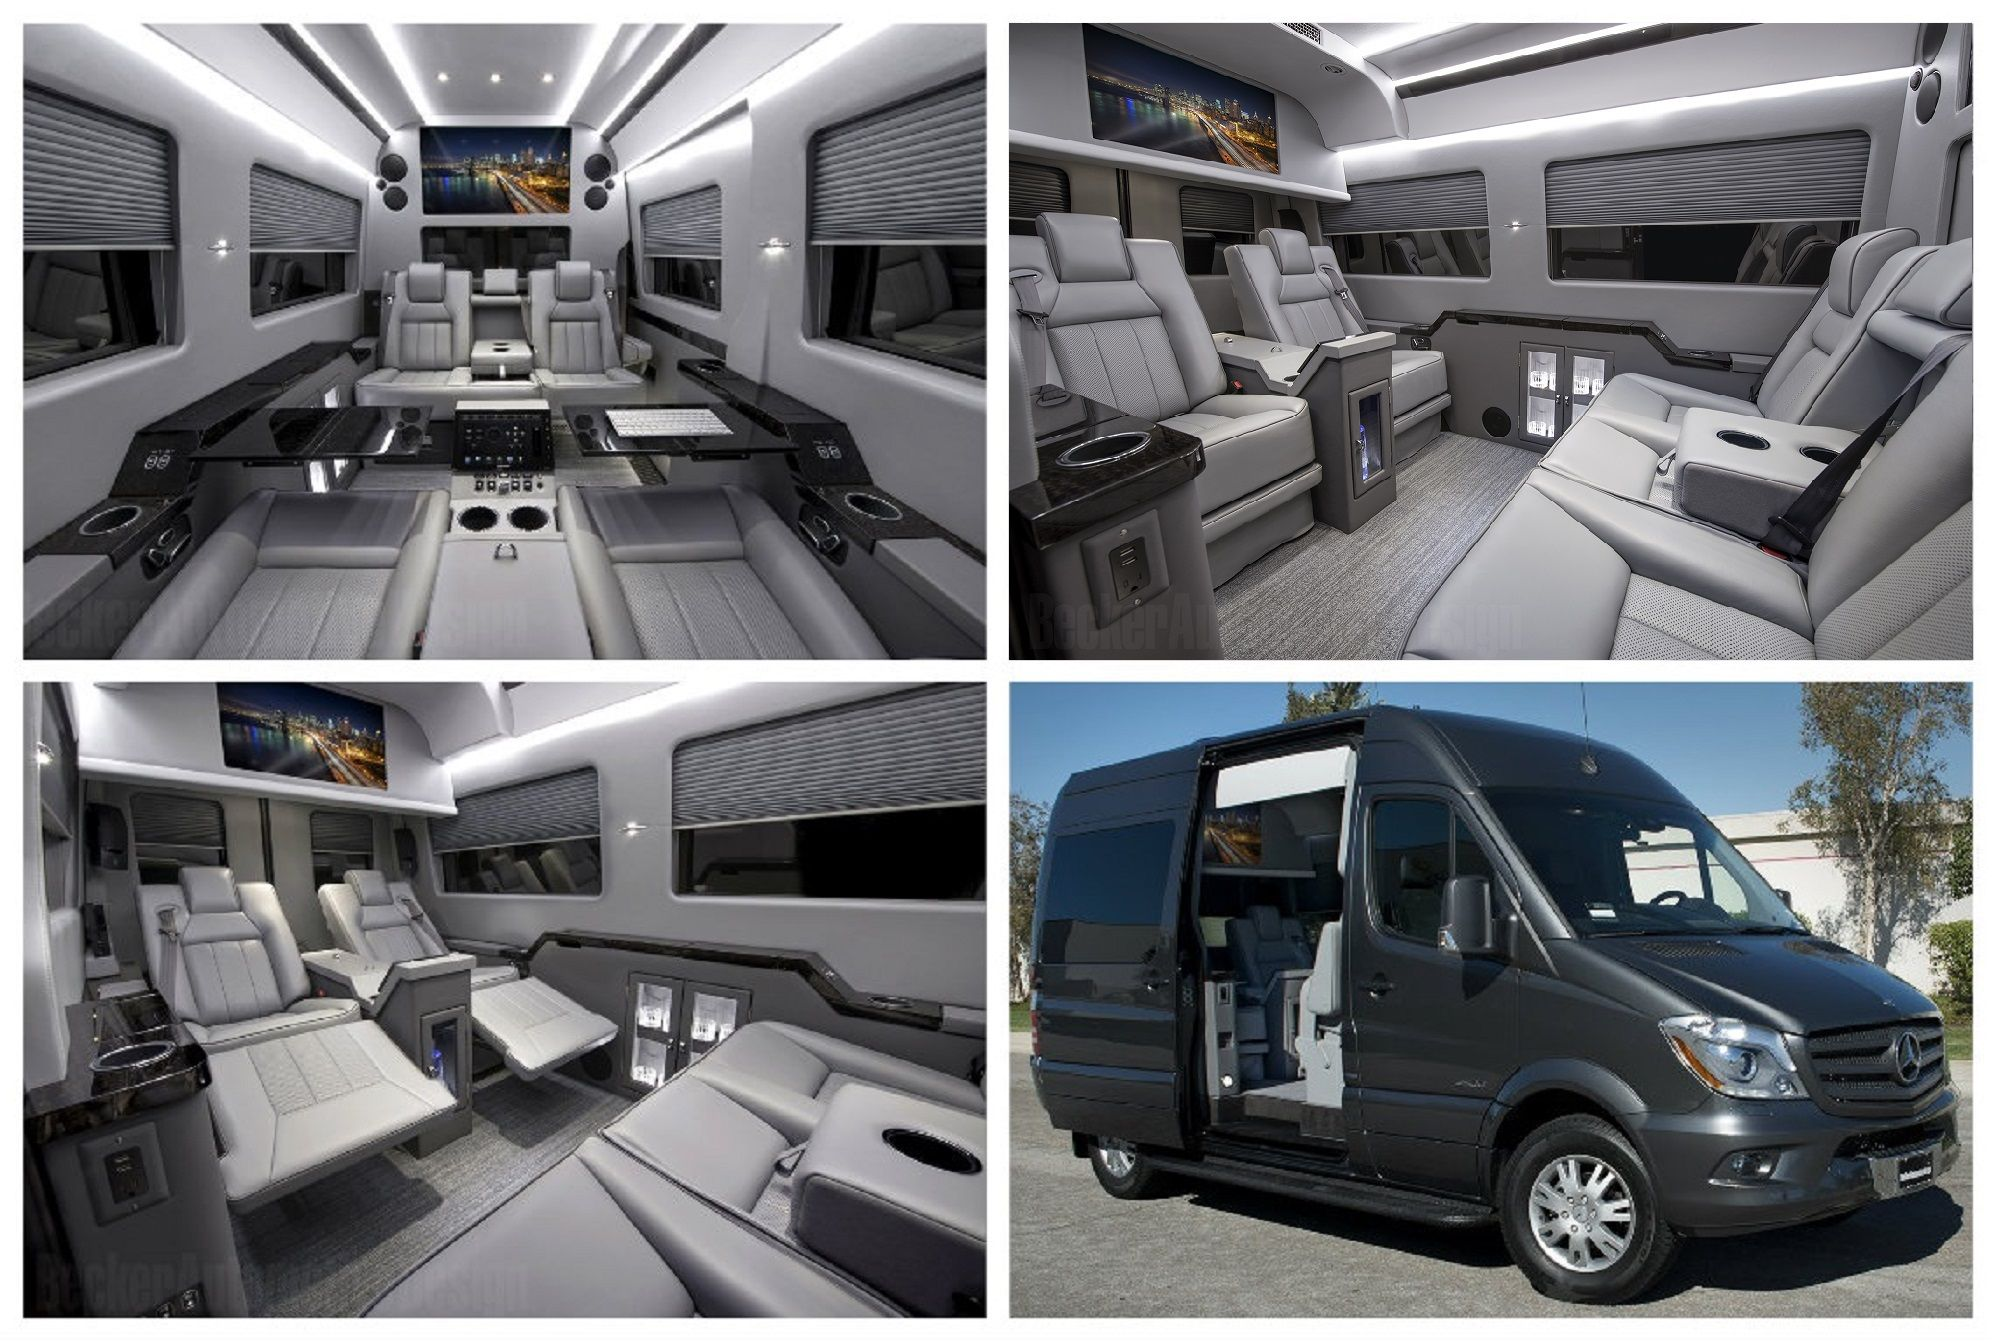 The finest luxury handcrafted mercedesbenz sprinter jetvan